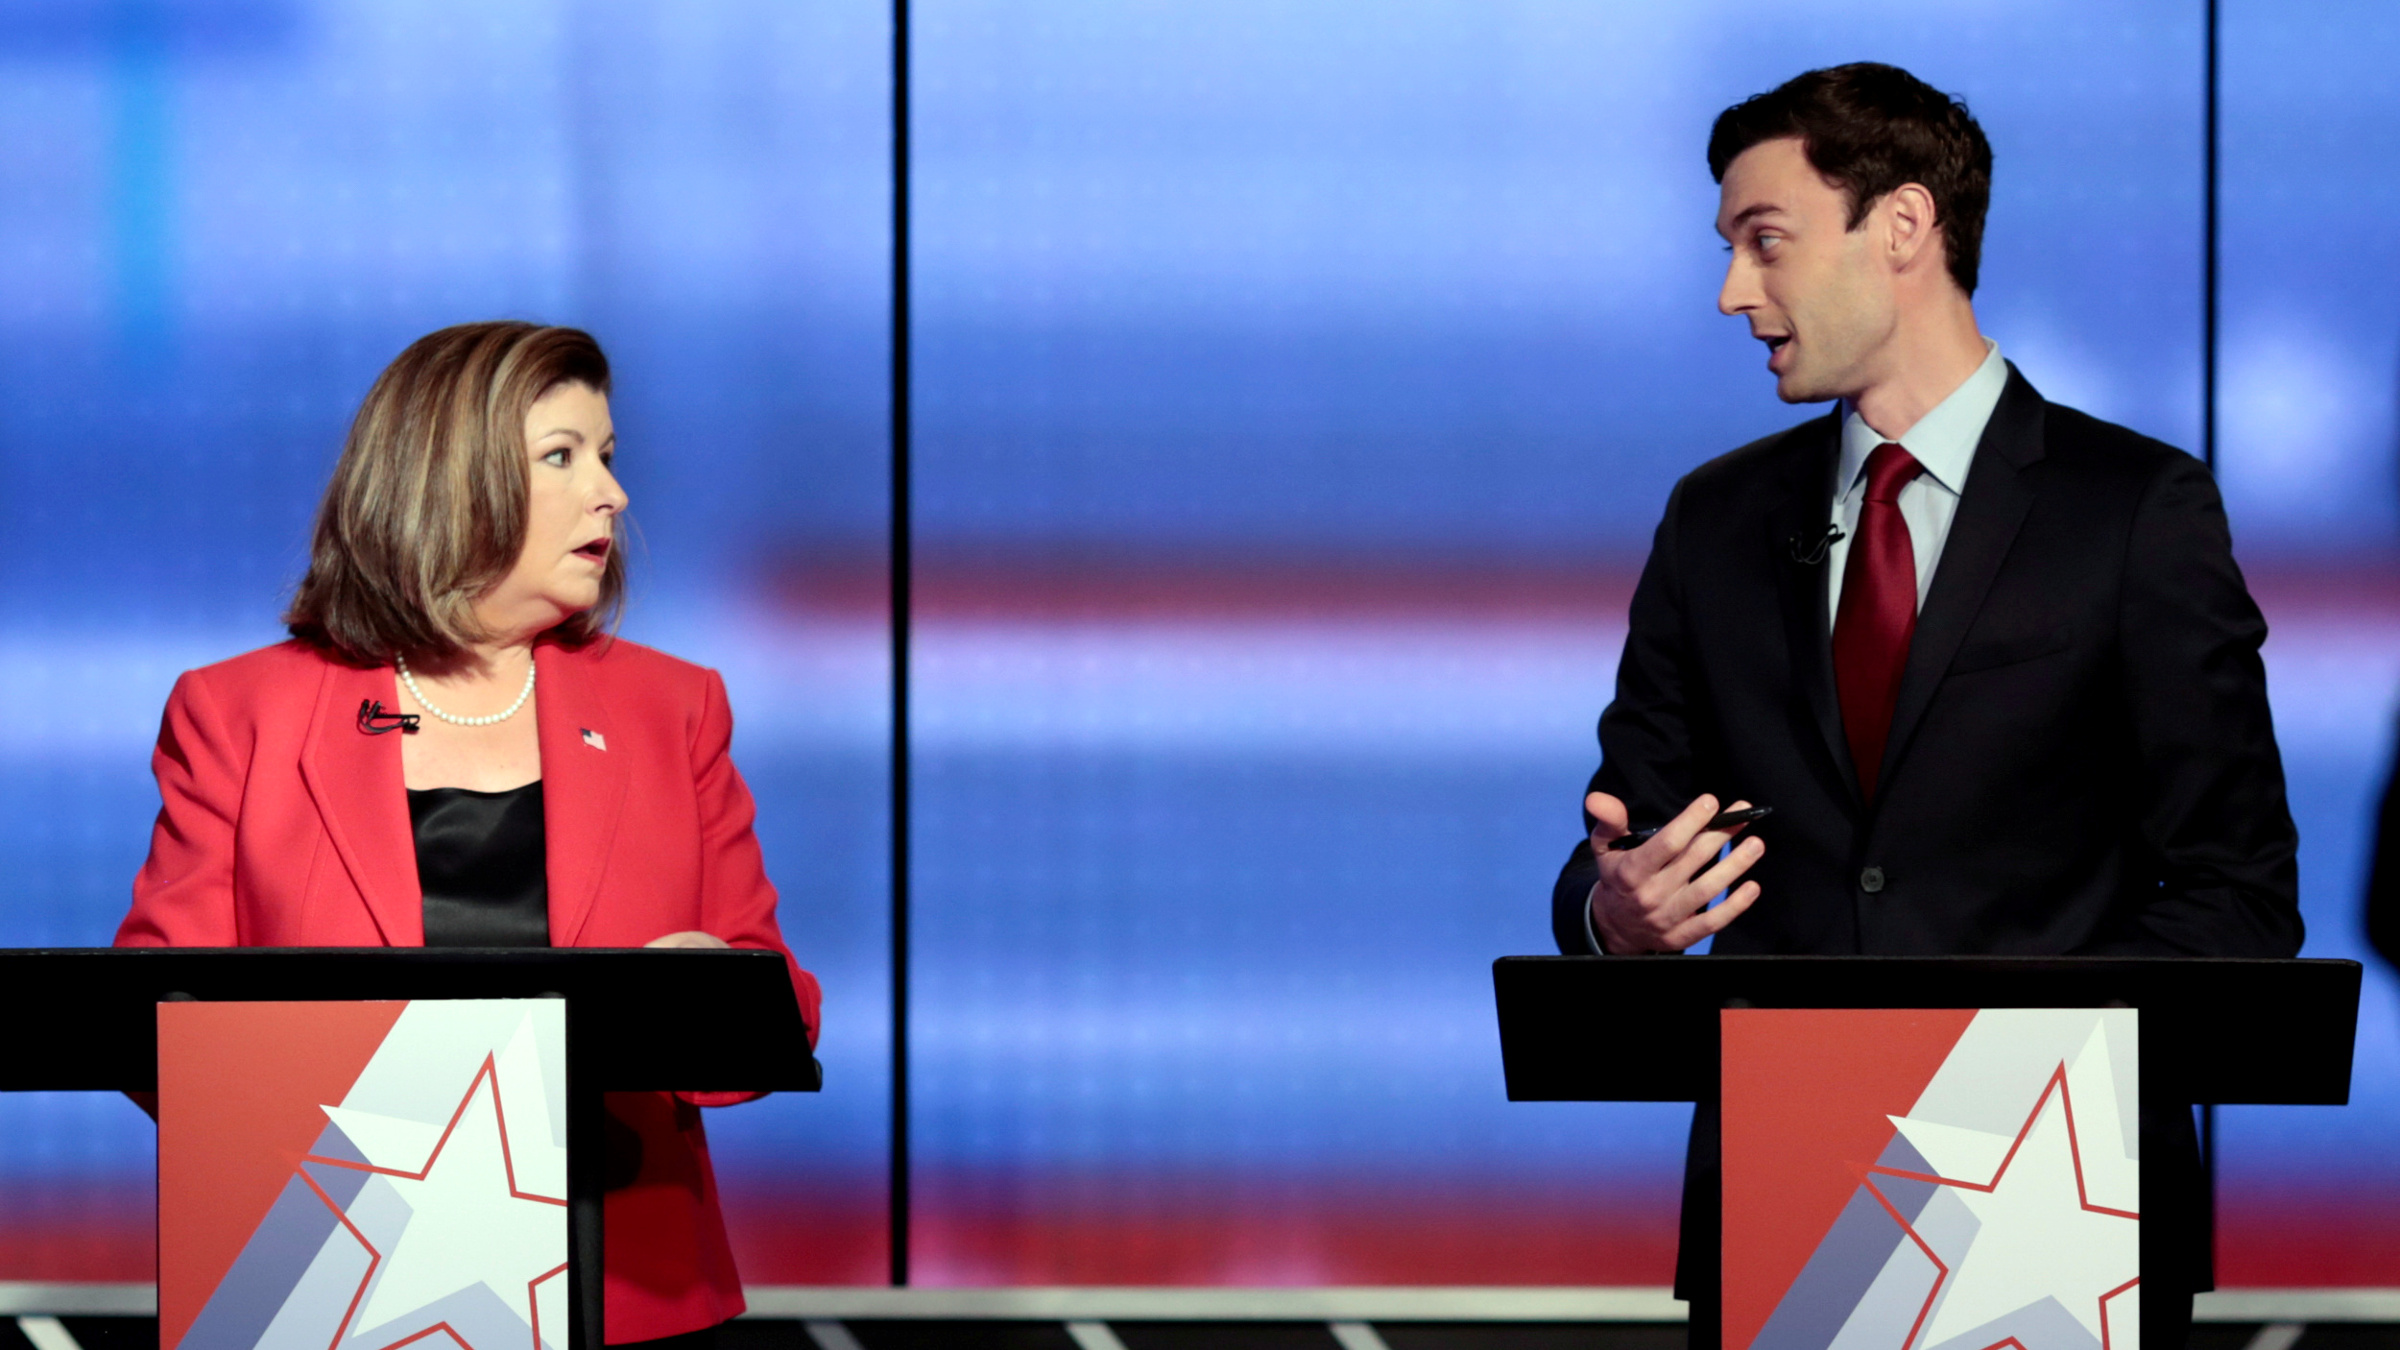 FILE PHOTO - Republican candidate Karen Handel and Democratic candidate Jon Ossoff exchange words moments before Georgia's 6th Congressional District special election debate at WSB-TV studios in Atlanta, Georgia, U.S. on June 6, 2017.